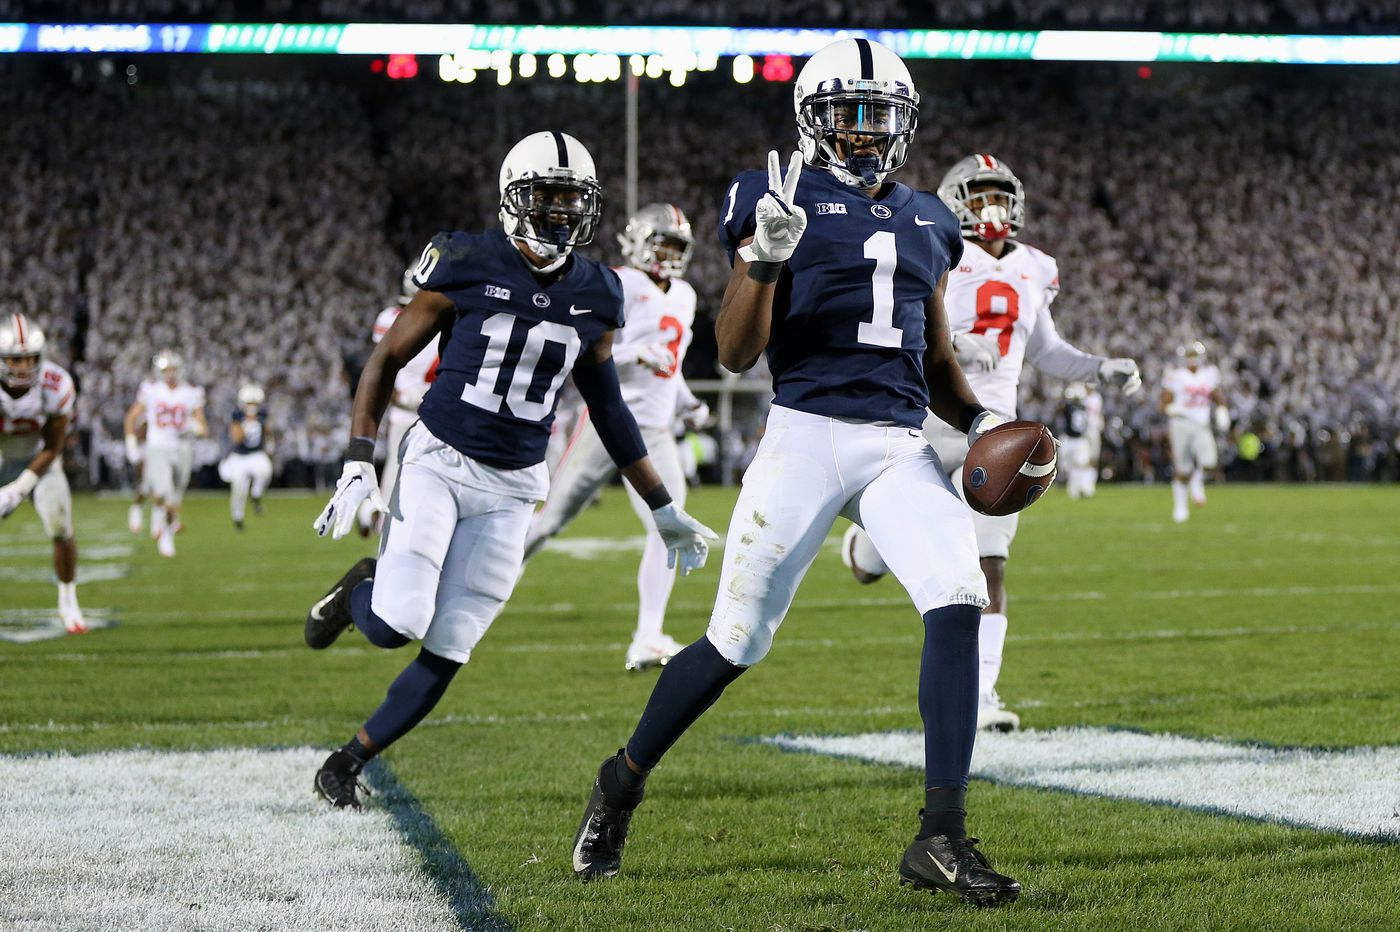 Penn State's K.J. Hamler hoping to spring more big plays vs. Kentucky in Citrus Bowl